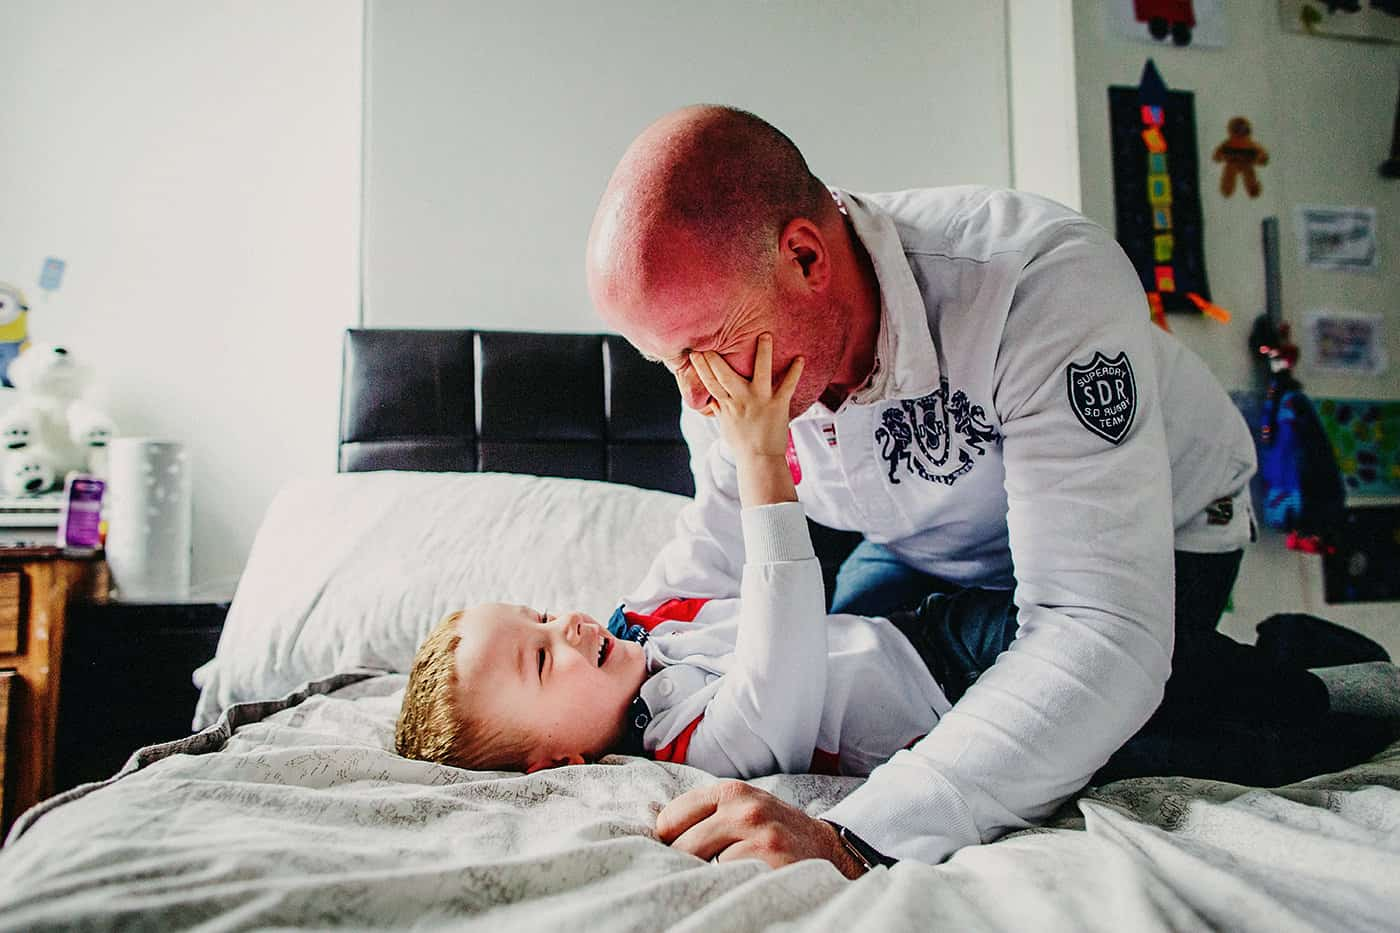 Father and son play together on bed